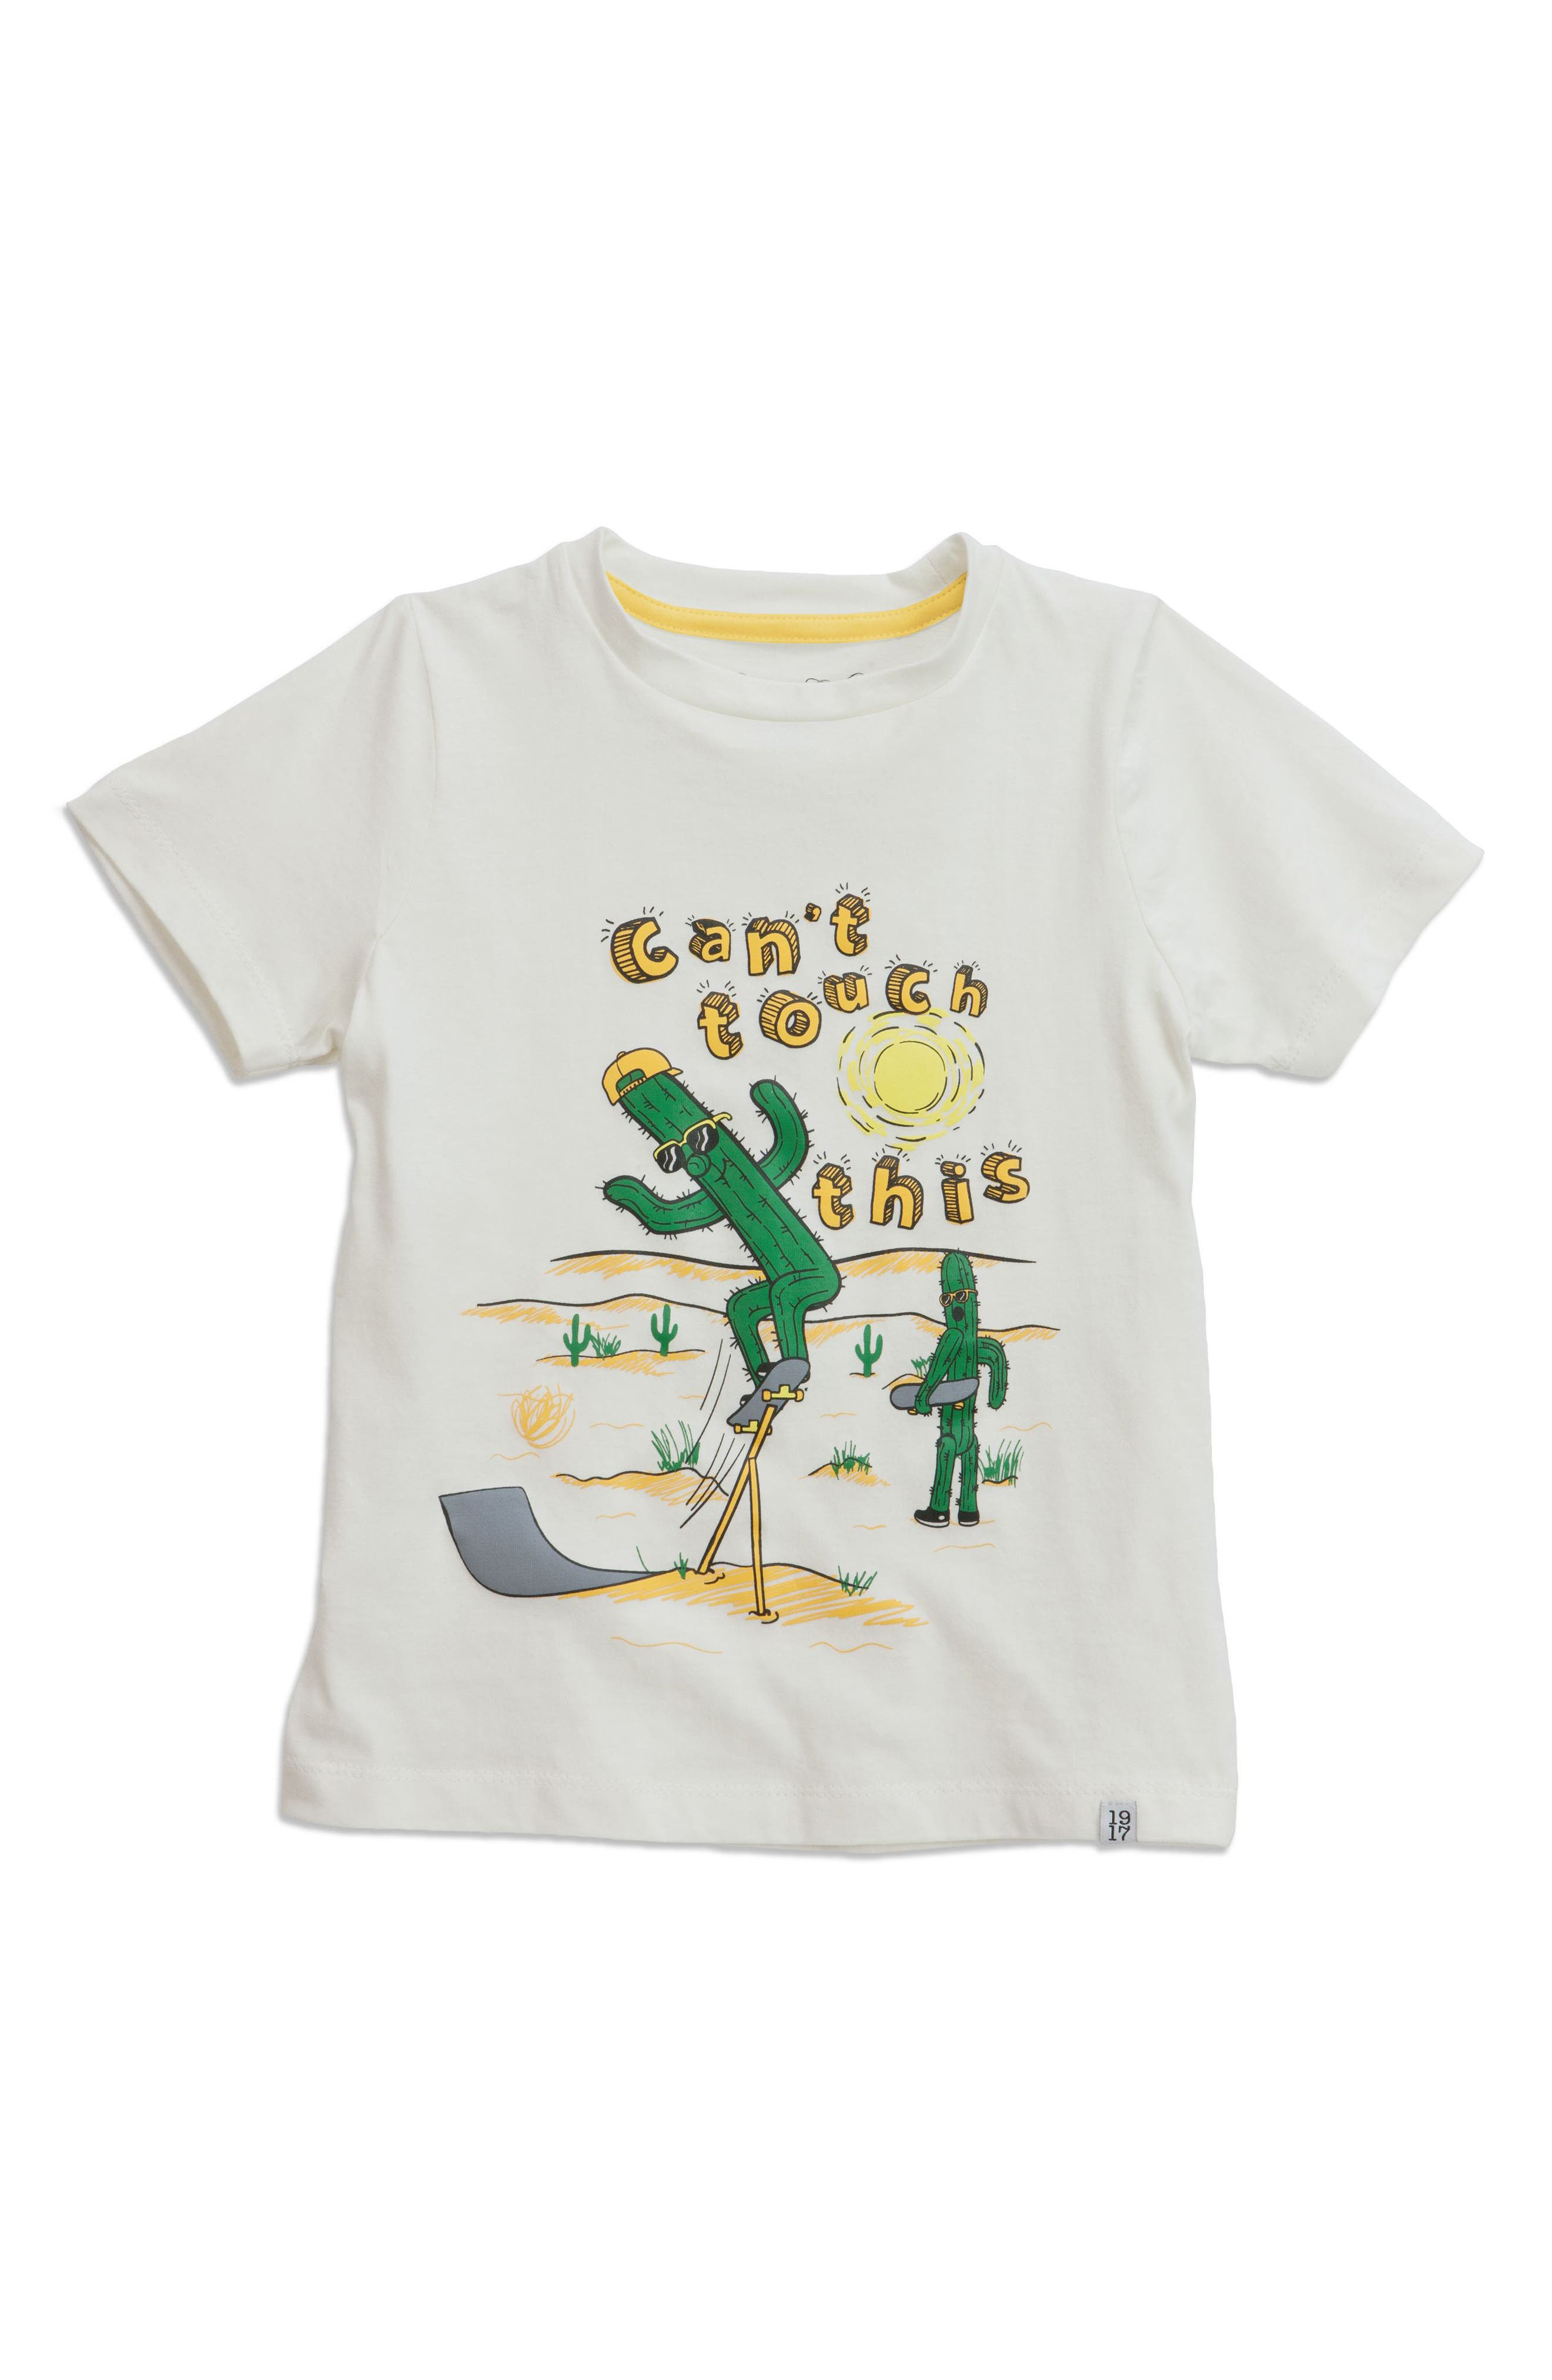 Can't Touch This Graphic T-Shirt,                             Main thumbnail 1, color,                             020